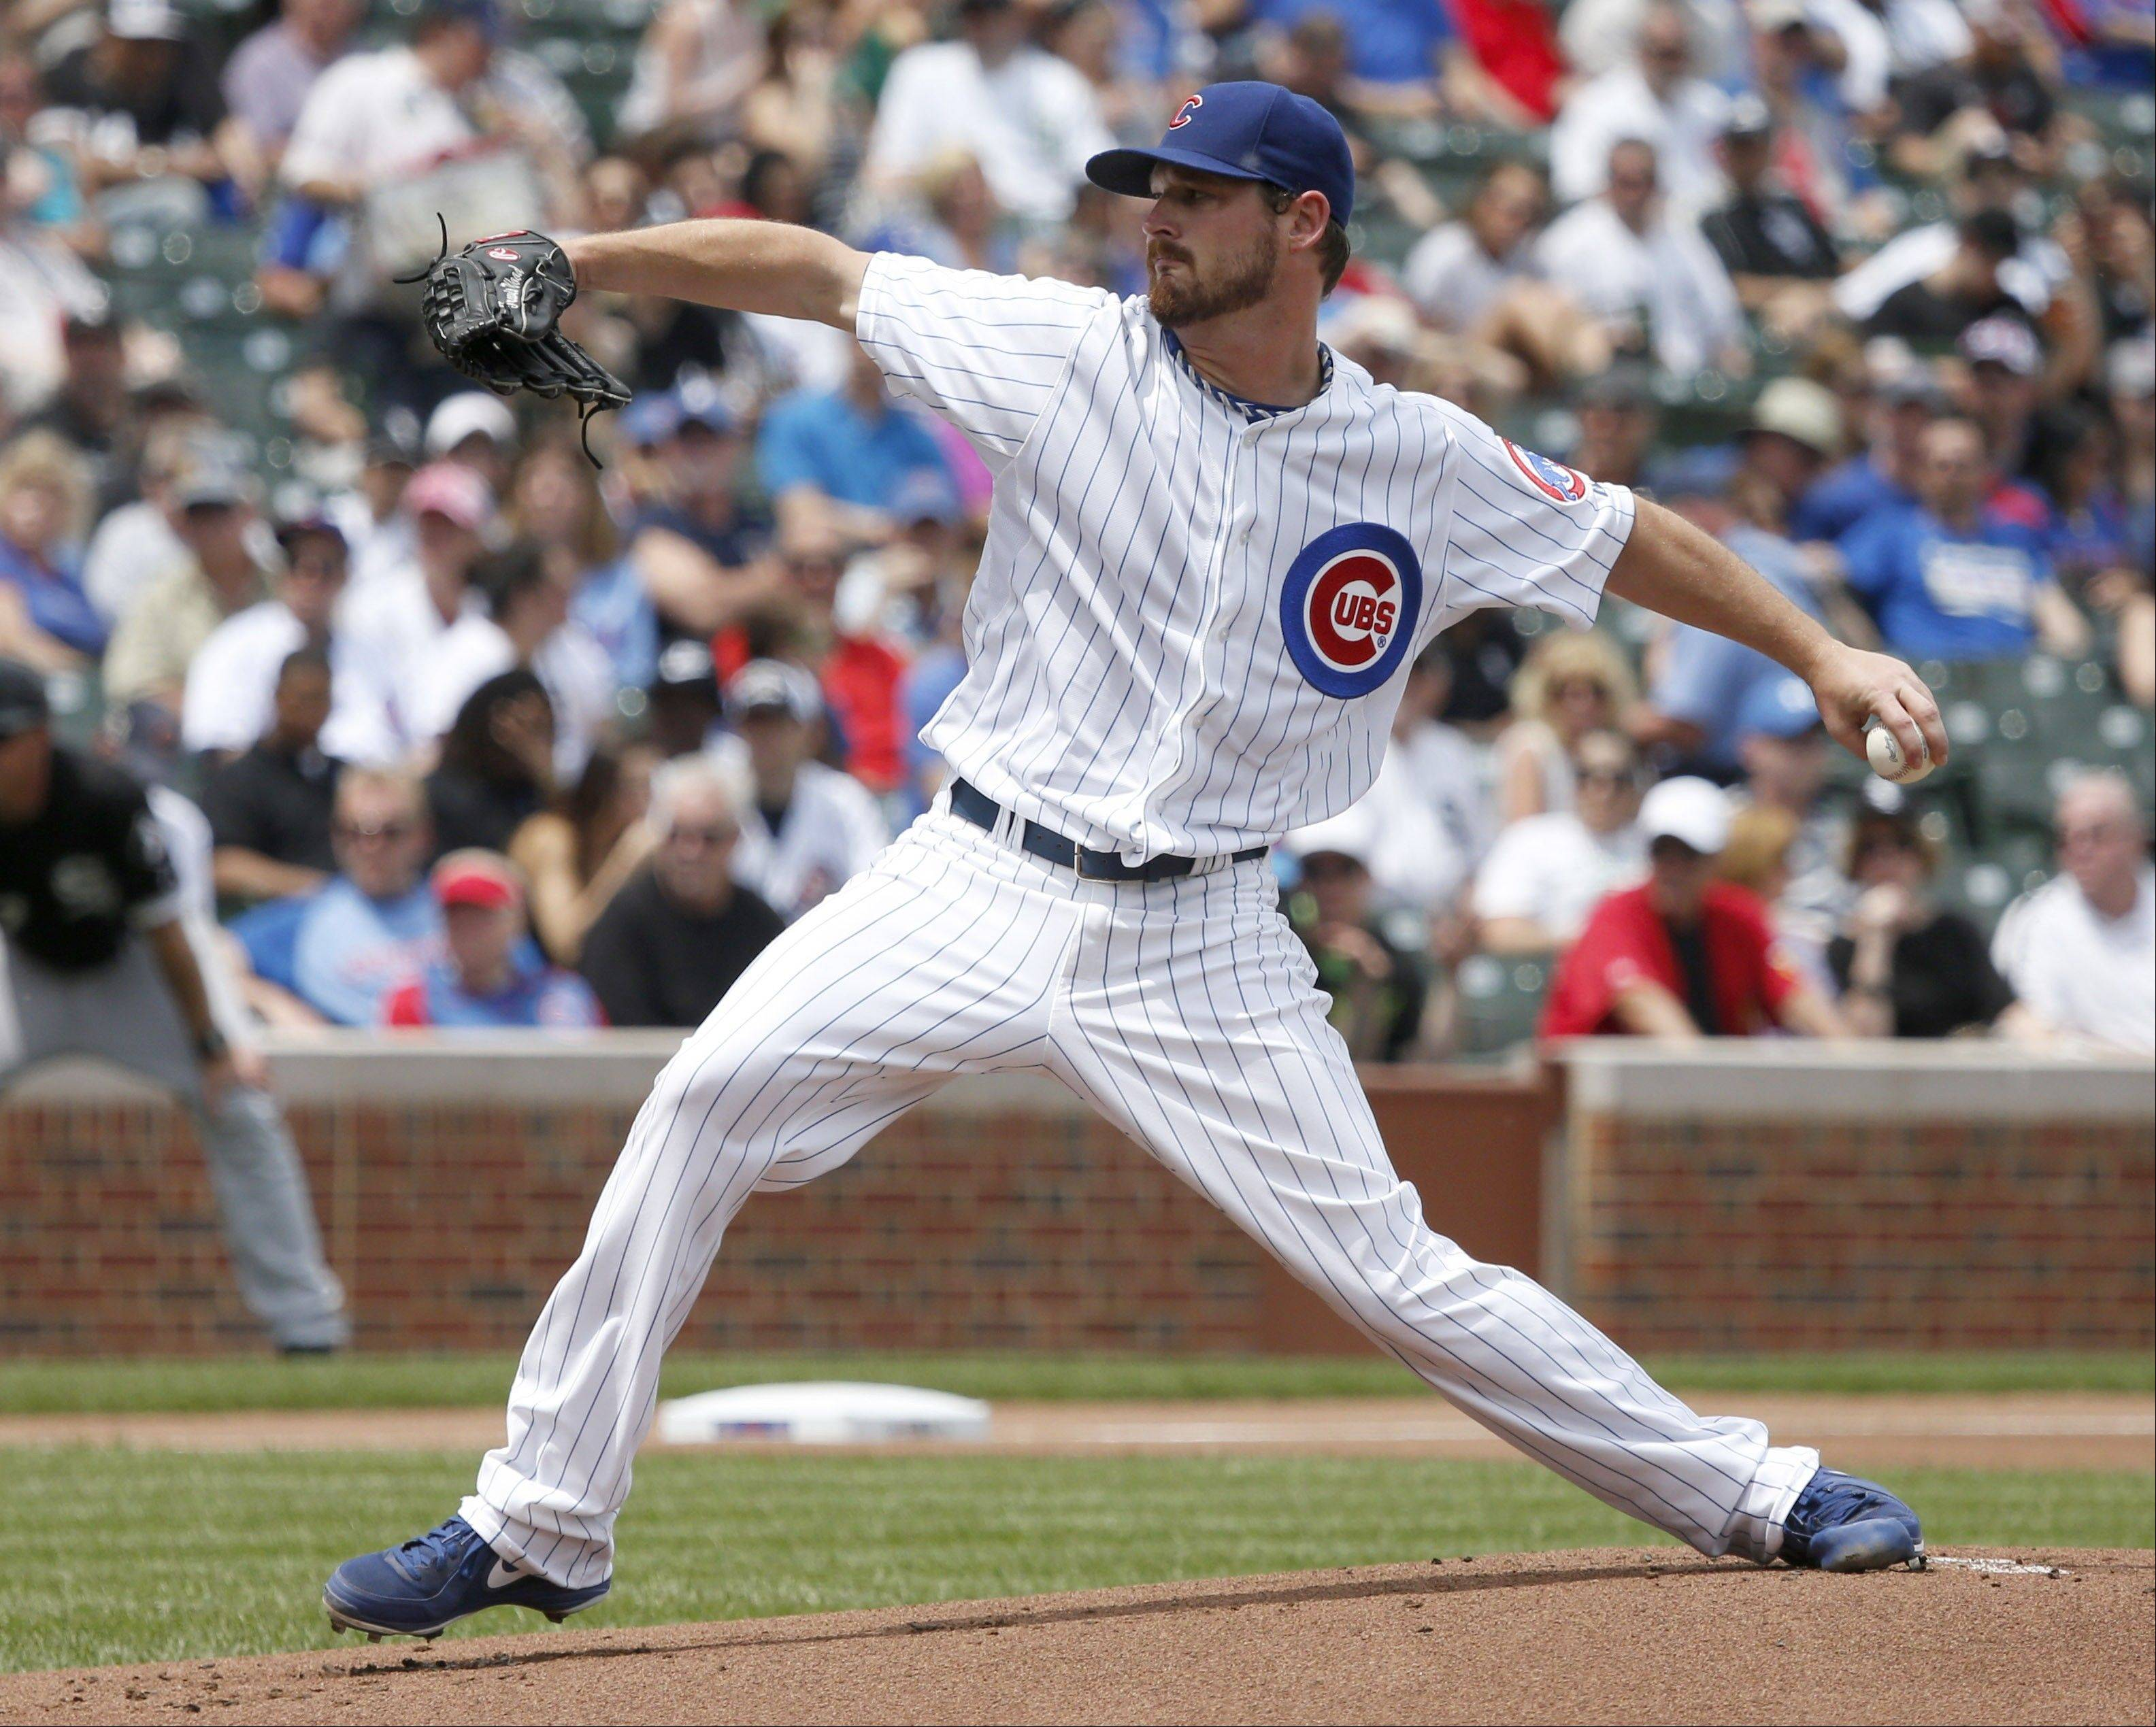 Chicago Cubs starting pitcher Travis Wood delivers during the first inning of an interleague baseball game against the Chicago White Sox Thursday, May 30, 2013, in Chicago.